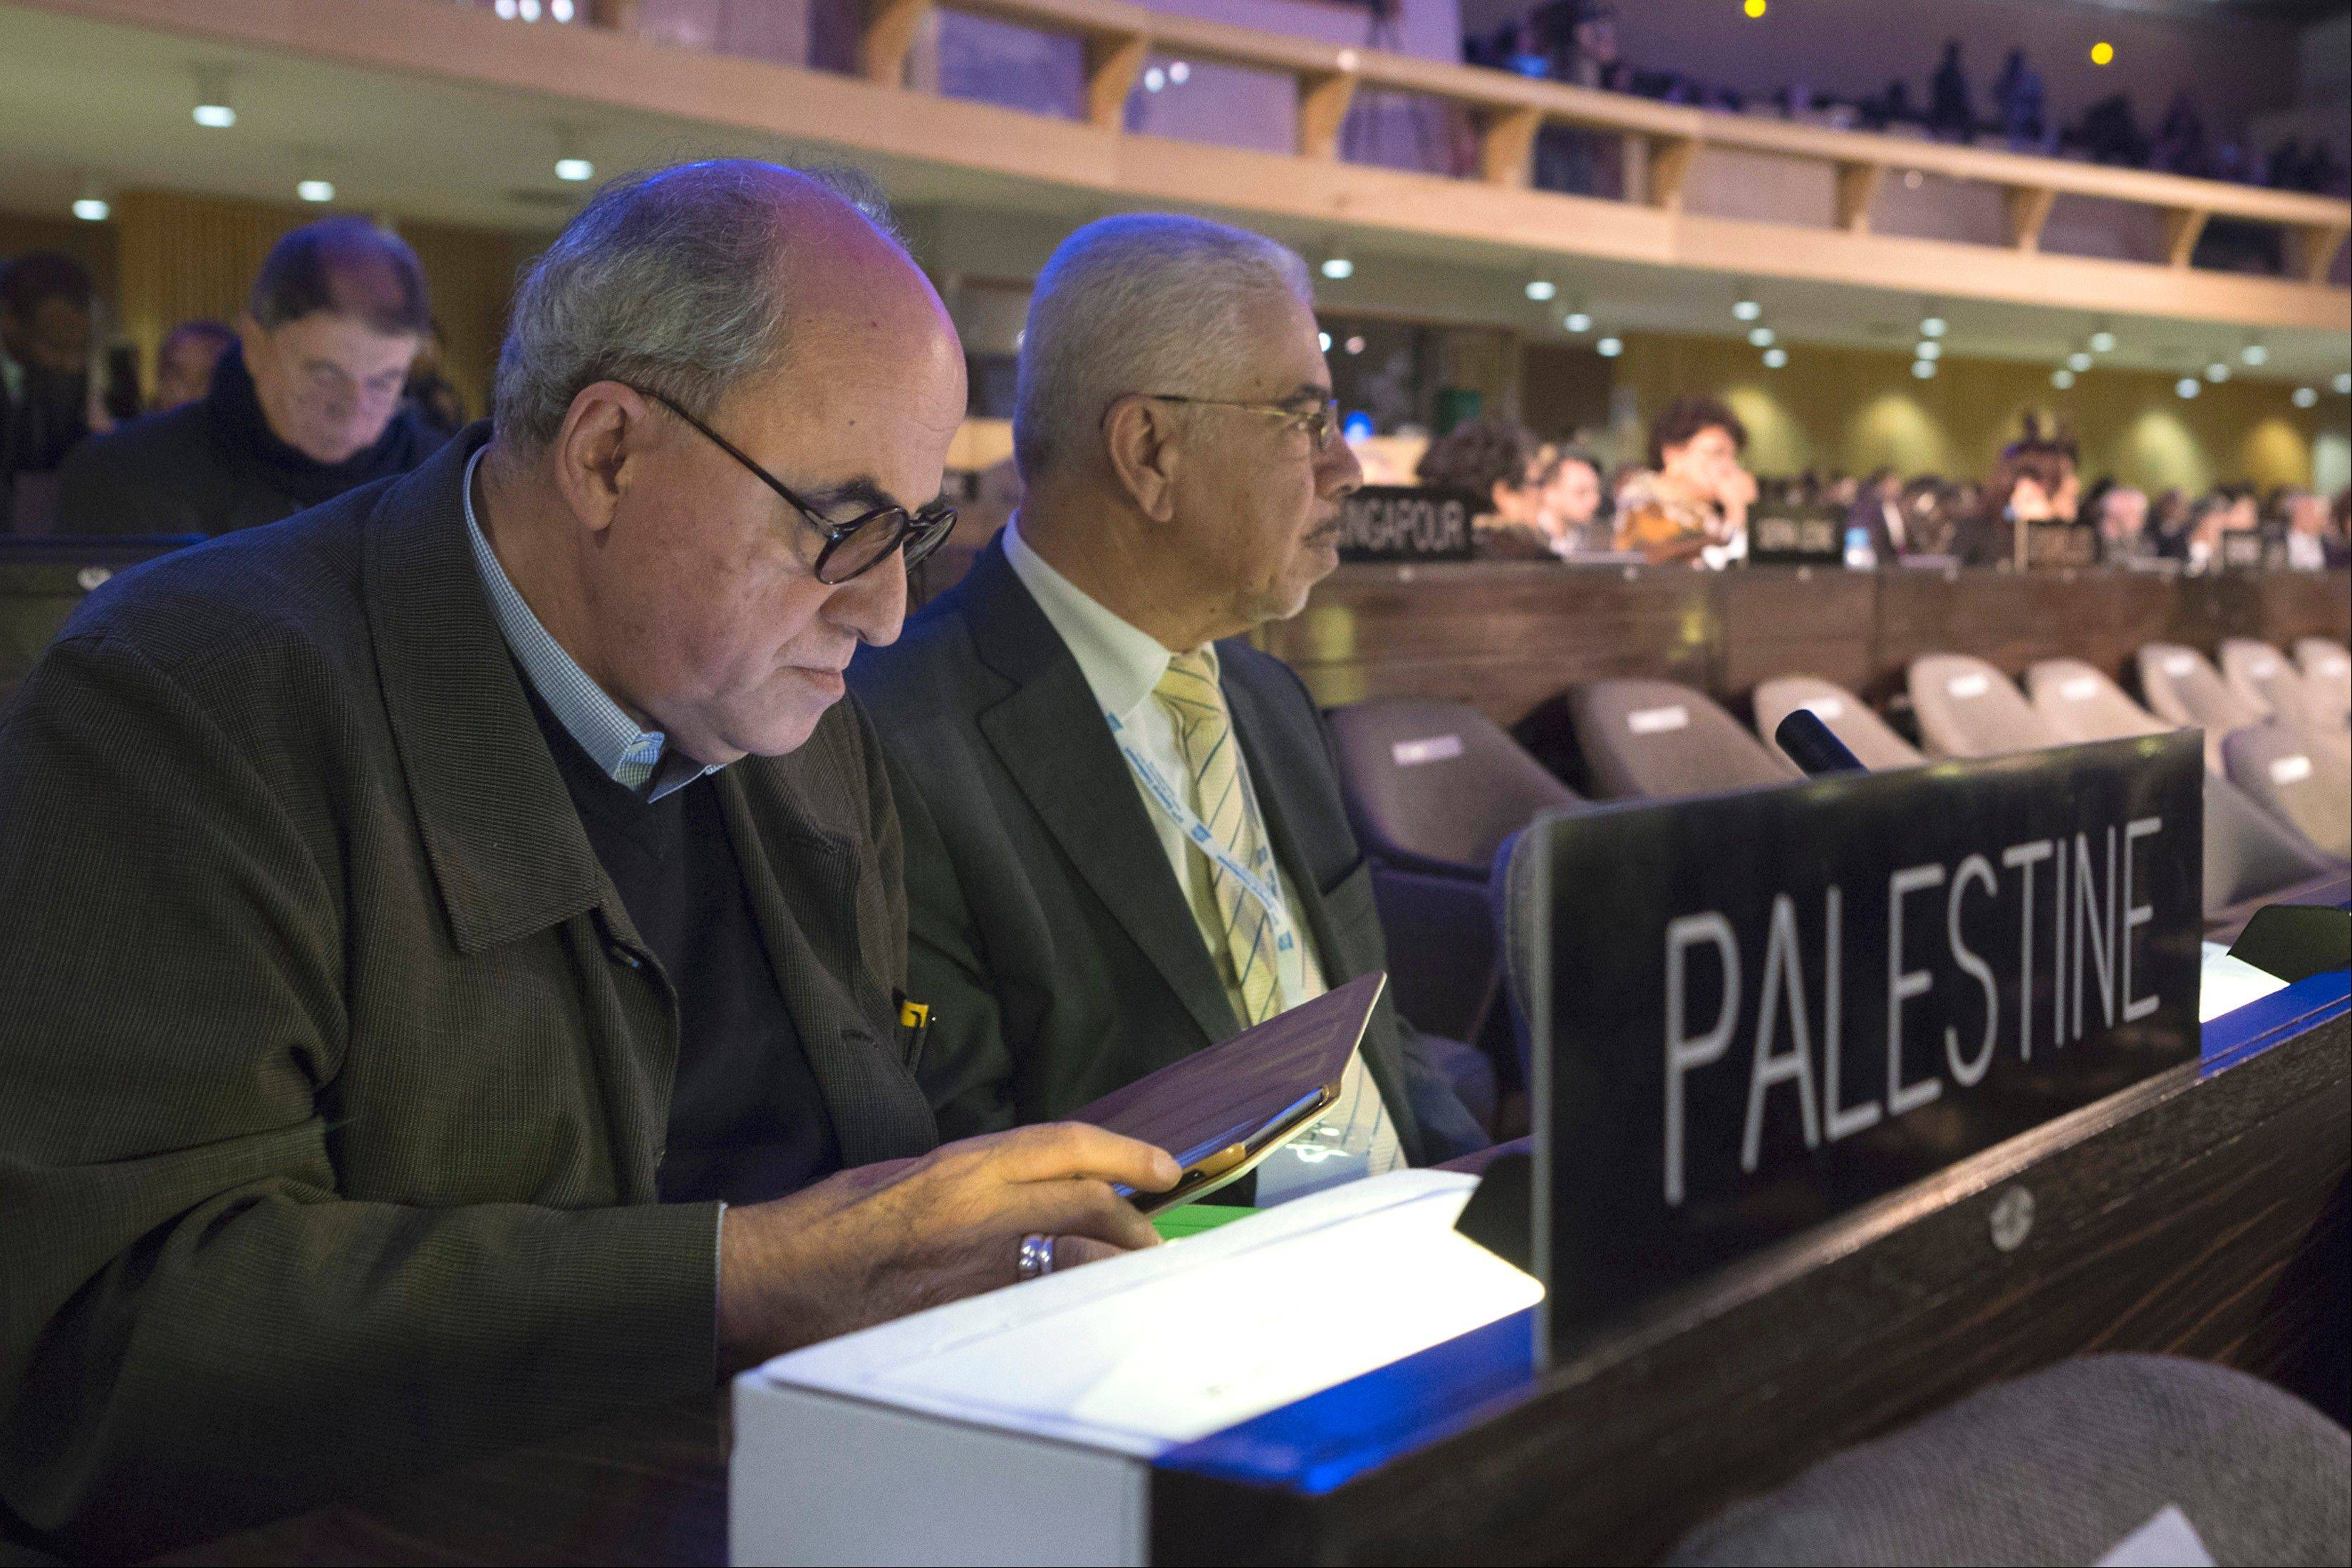 The Palestinian Ambassador to UNESCO Elias Sanbar, left, checks his tablet Friday during a session of the UNESCO General Conference in Paris. American influence in culture, science and education around the world took a high-profile blow Friday after the U.S. automatically lost voting rights at UNESCO, after missing a crucial deadline to repay its debt to the world's cultural agency.